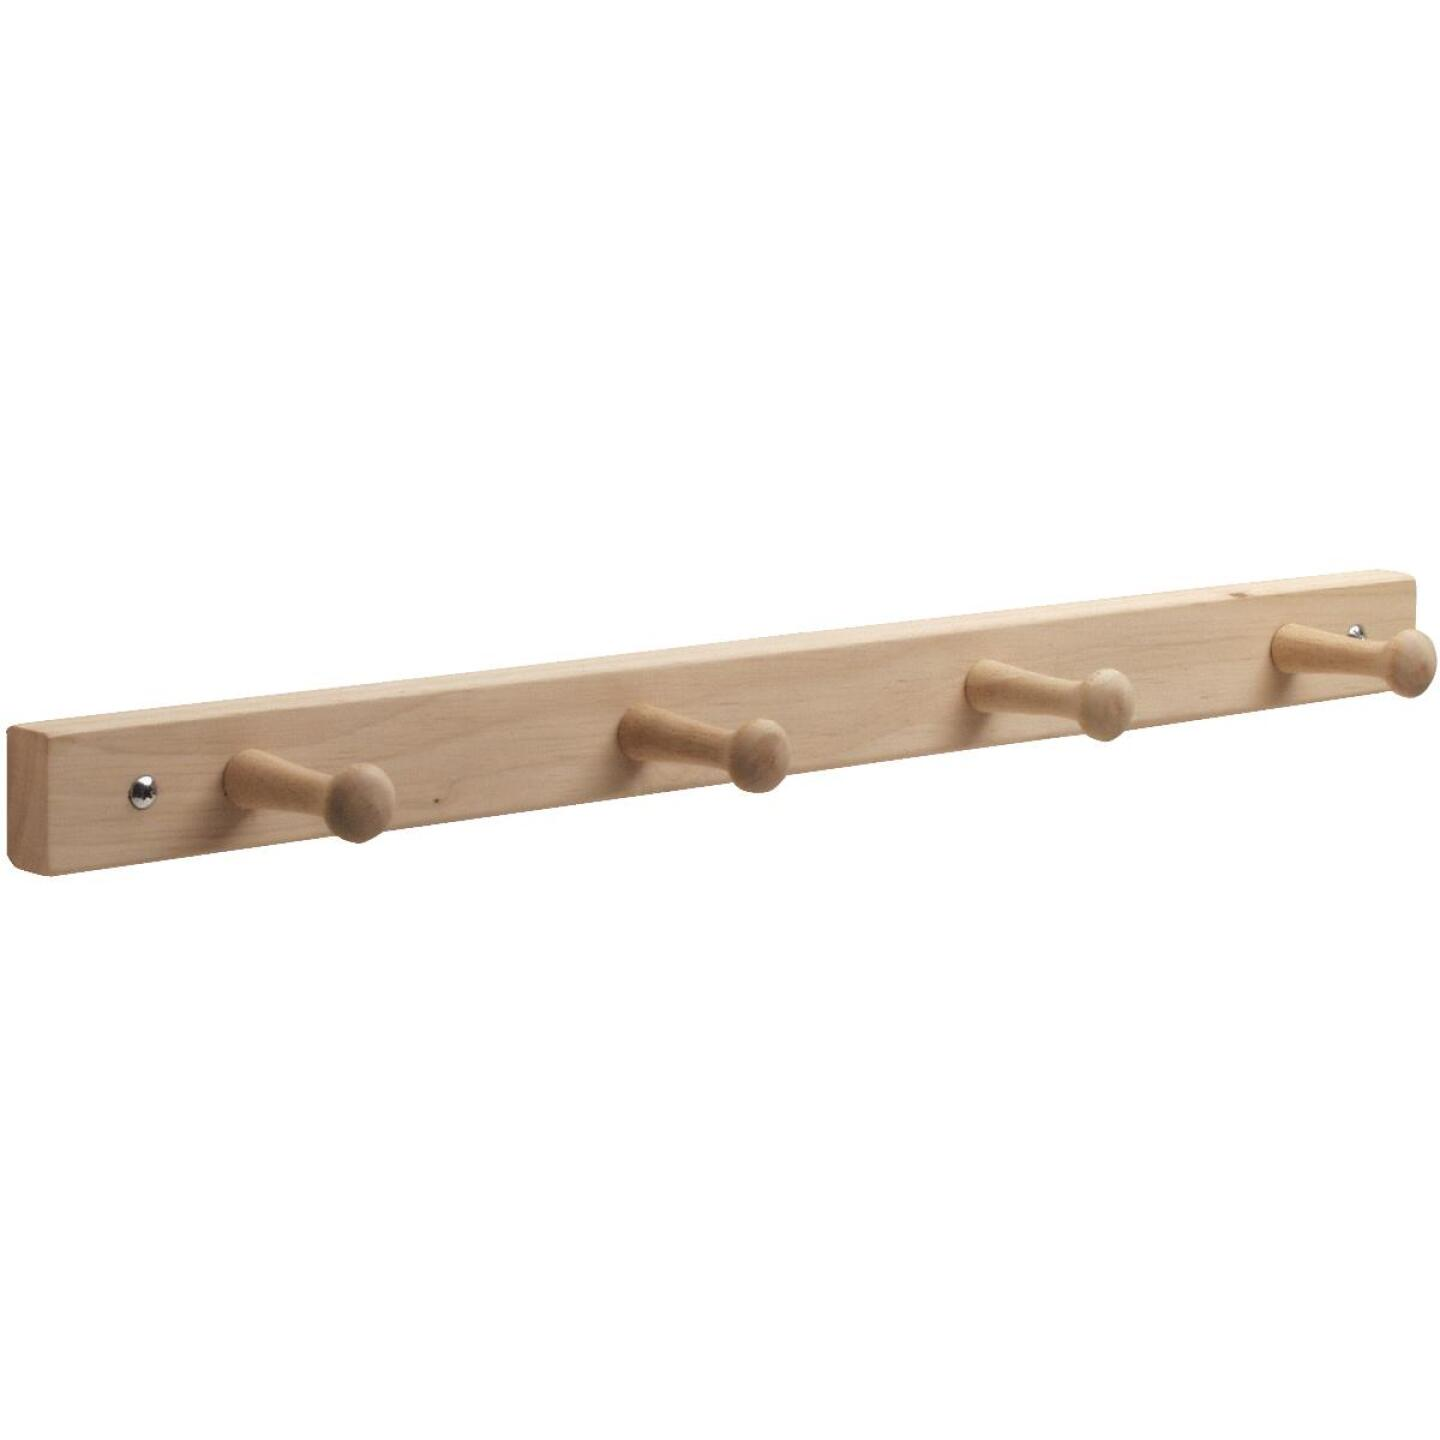 Interdesign Natural Wood 4-Peg Rack Image 1